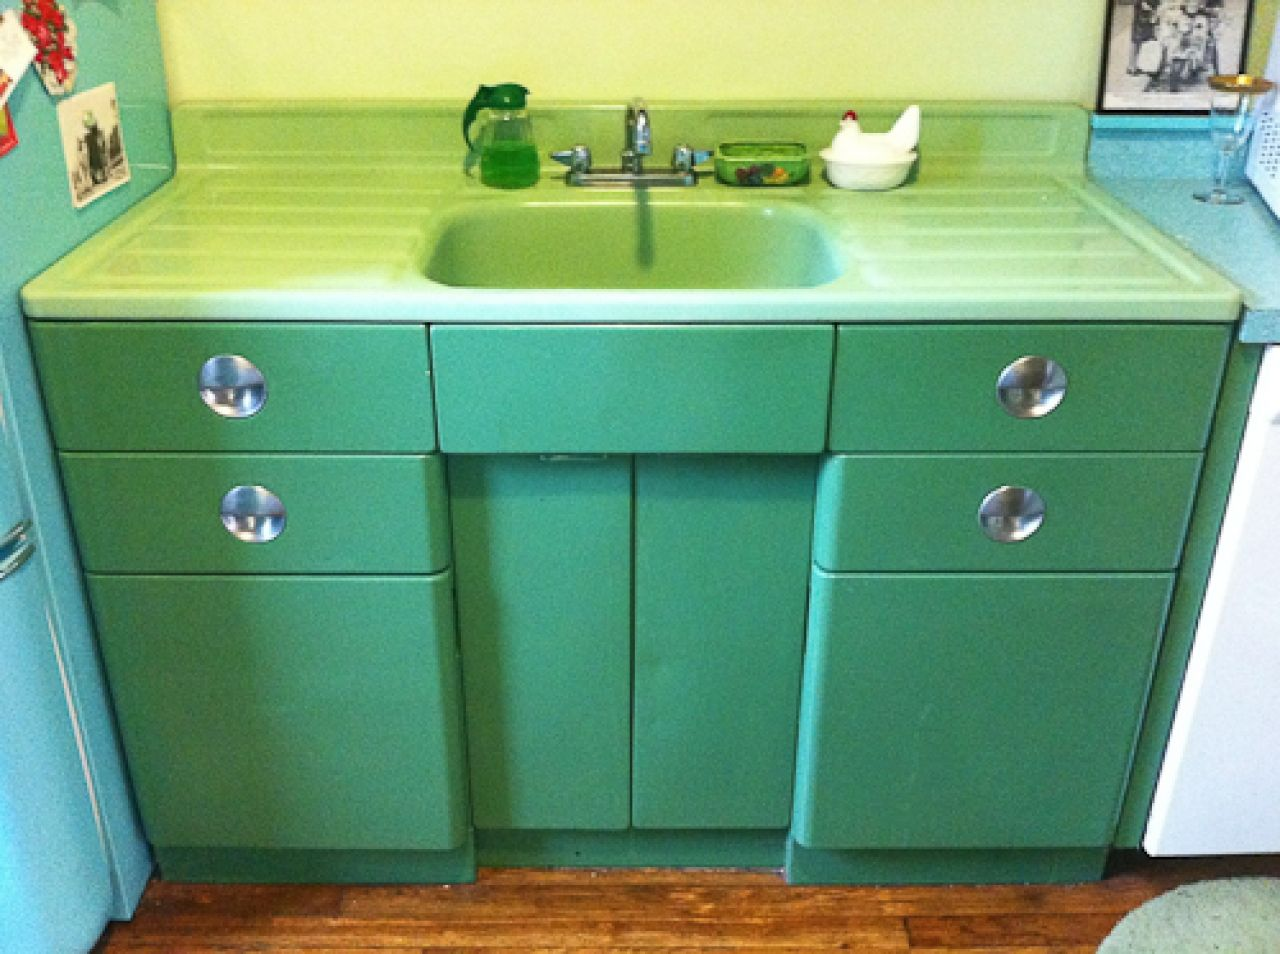 metal kitchen cabinets metal kitchen cabinets Vintage Metal Kitchen Cabinet Vintage jadeite porcelain drainboard sink and metal sink cabinet